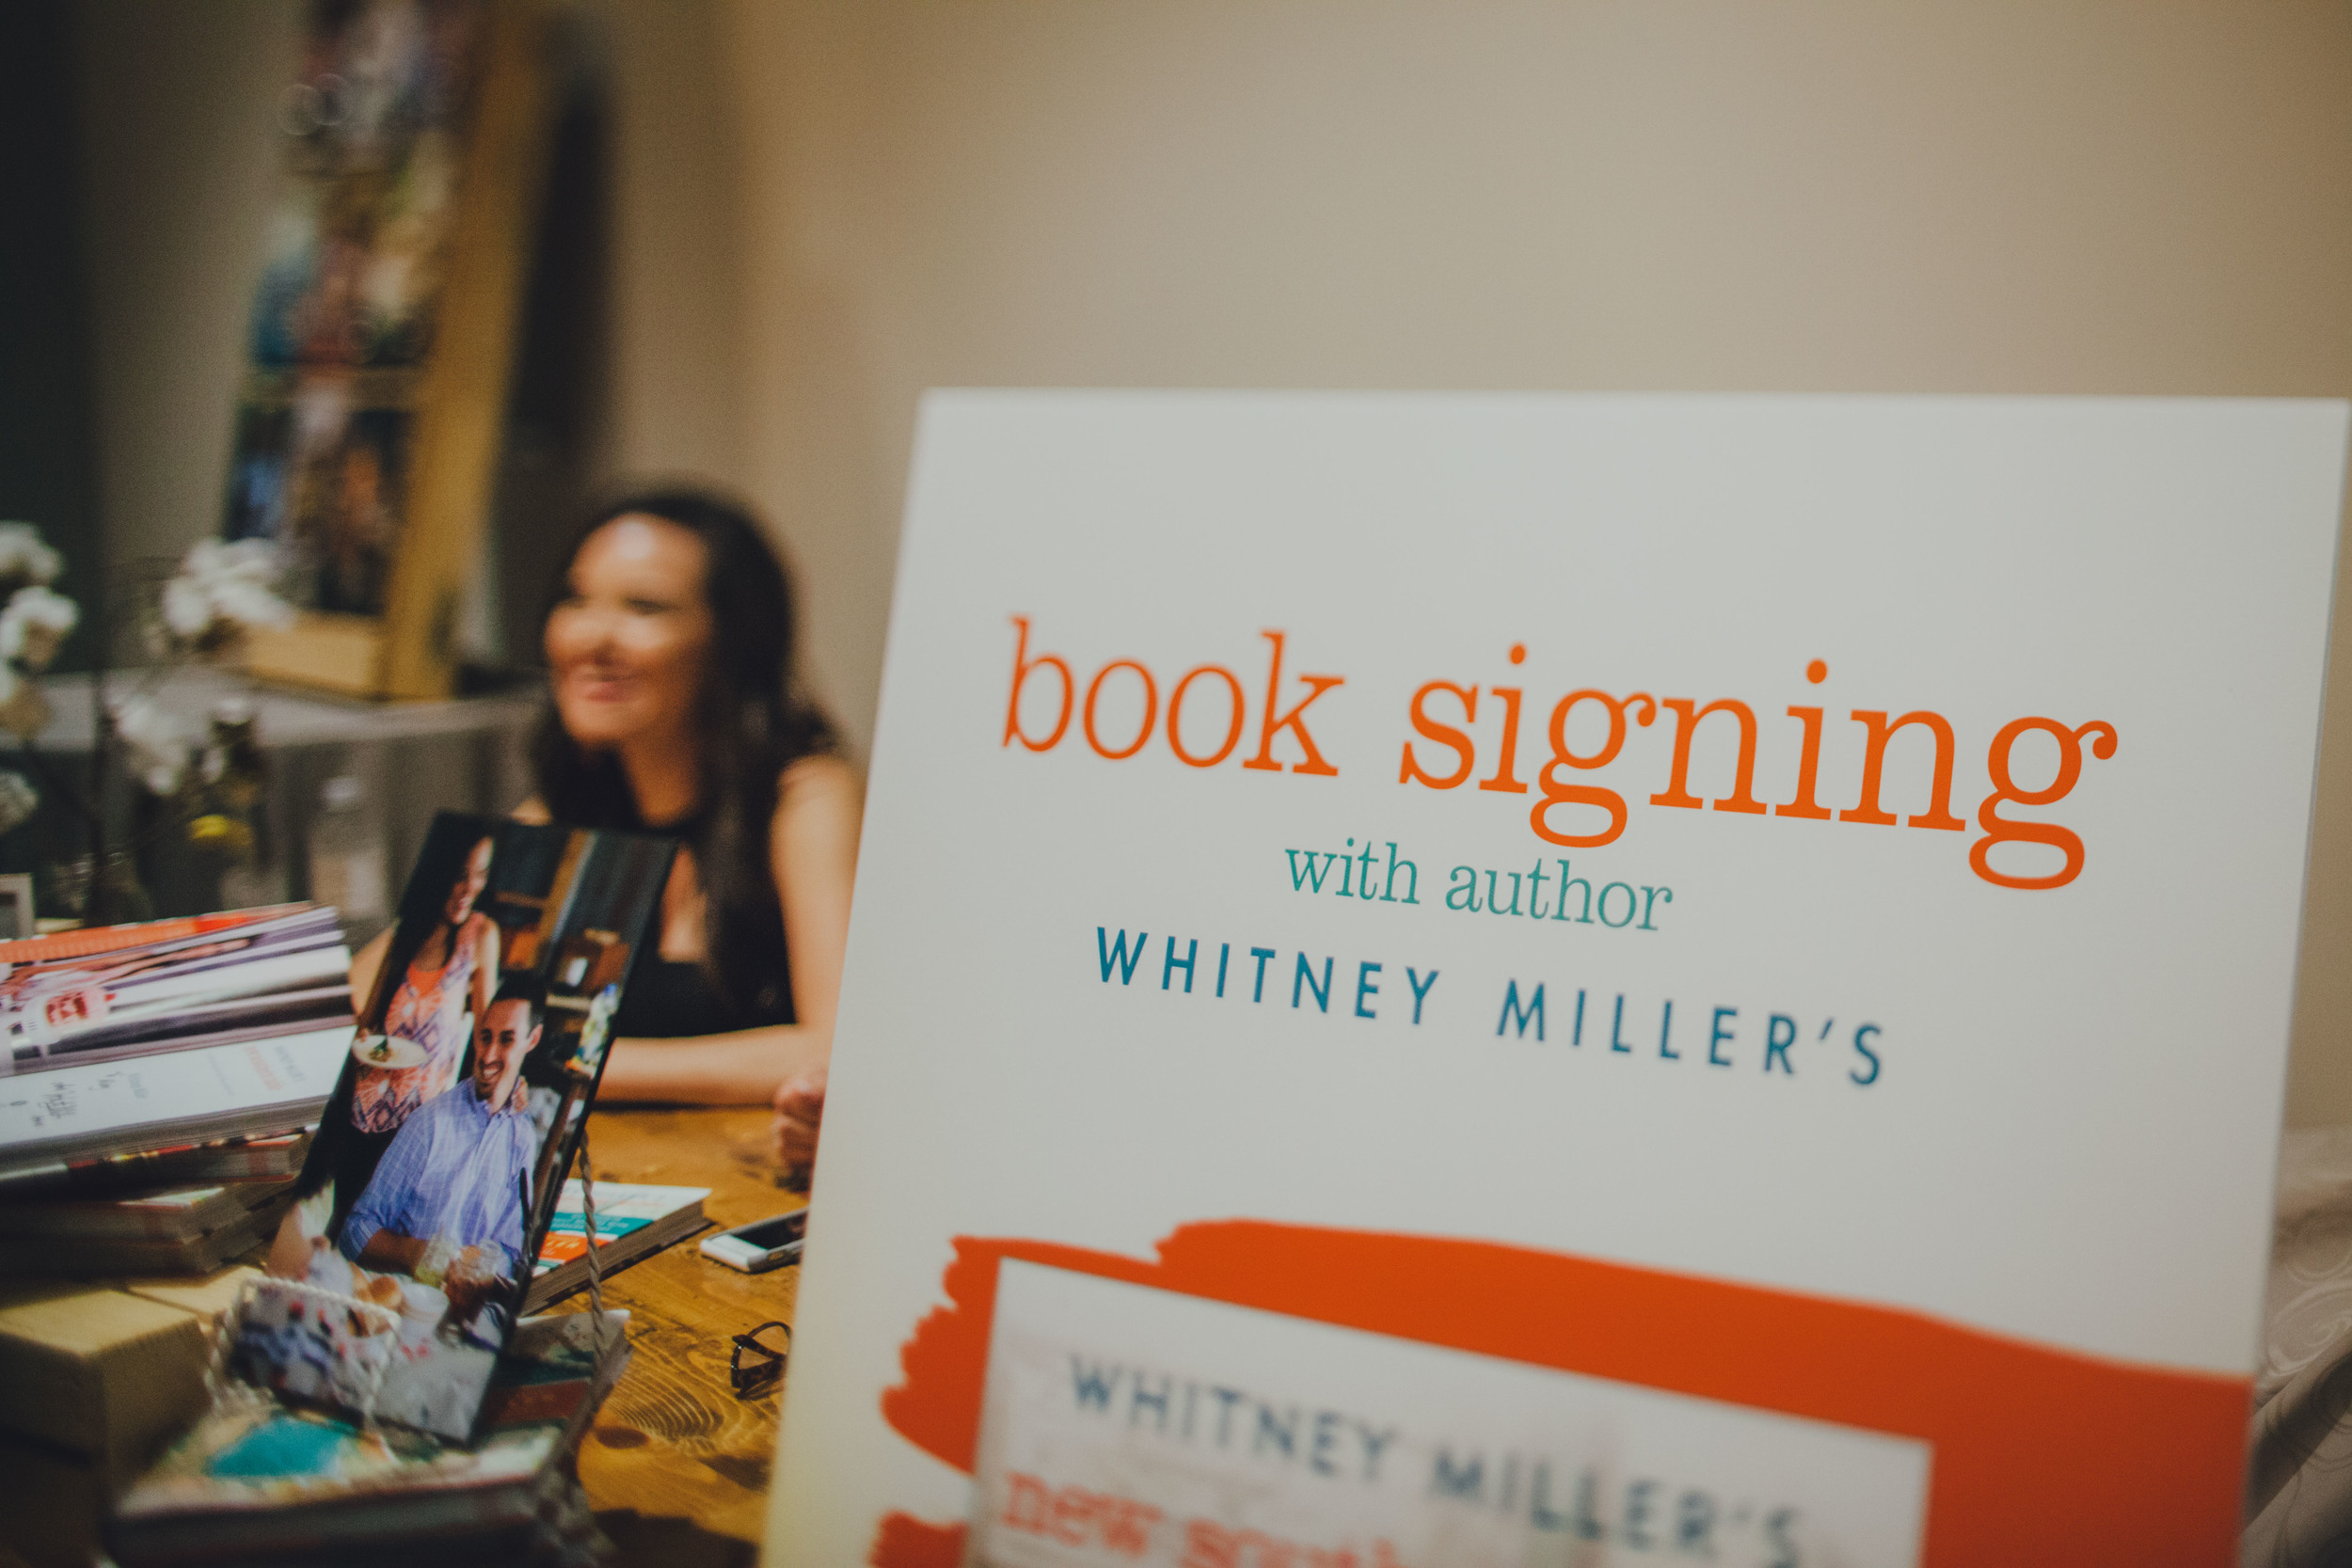 This Jenn Girl - Whitney Miller - New Southern Table 8